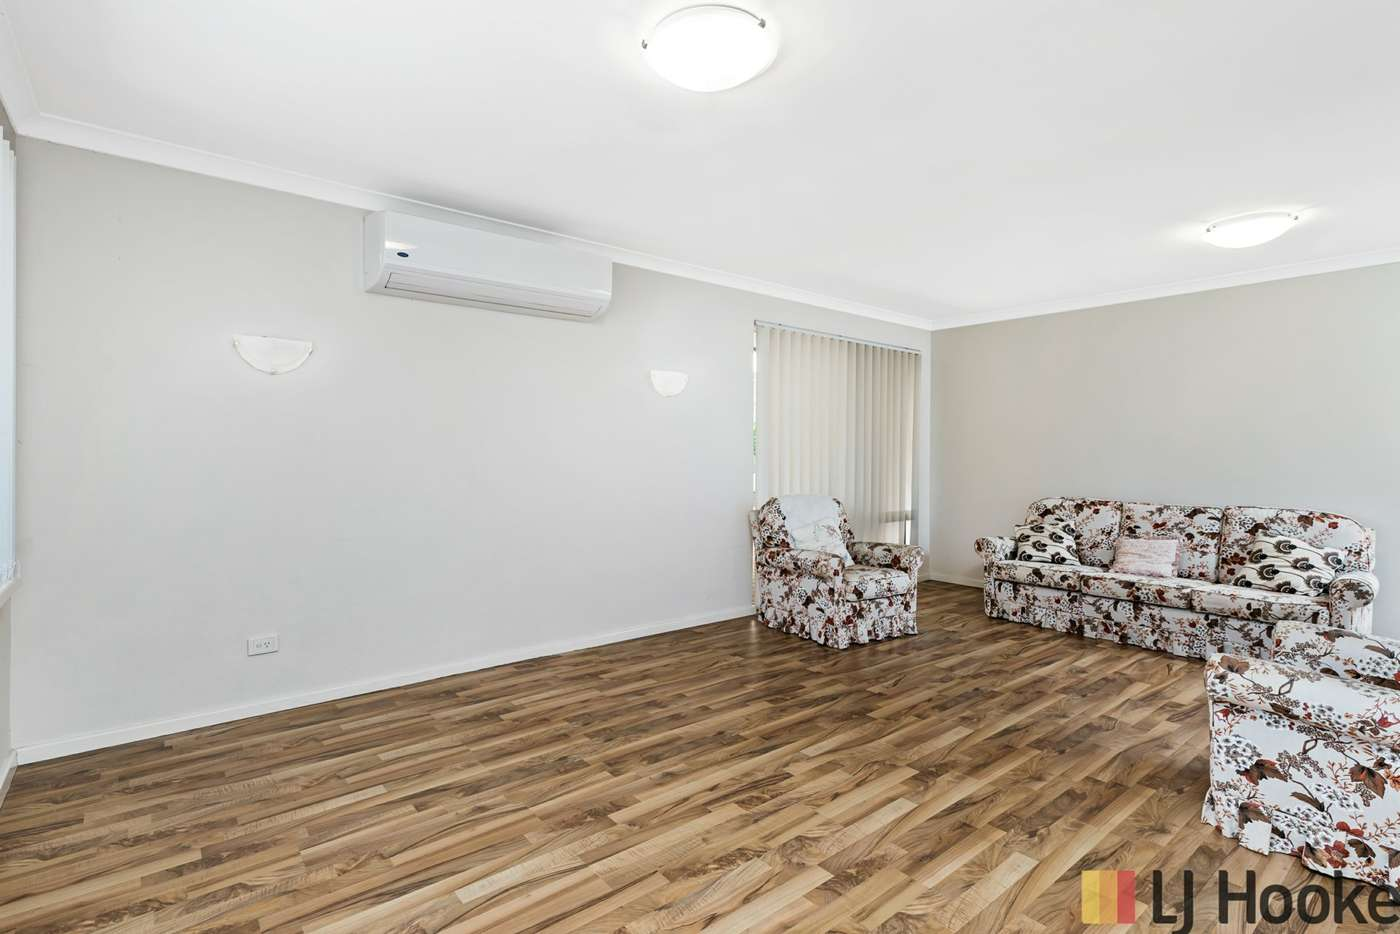 Seventh view of Homely house listing, 2 Lauder Place, Kinross WA 6028